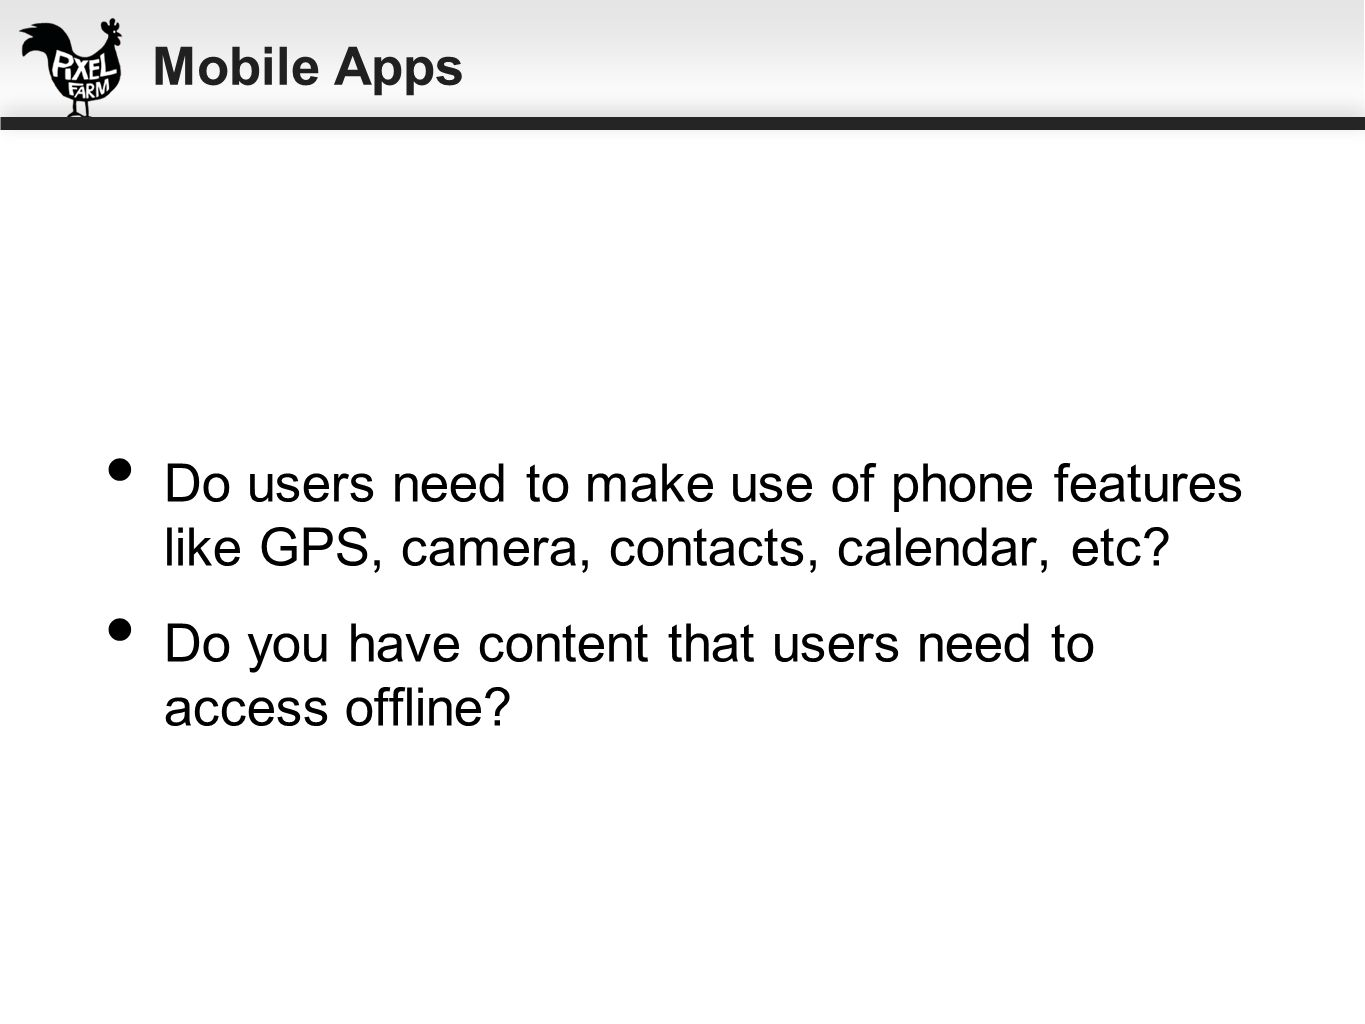 Mobile Apps Do users need to make use of phone features like GPS, camera, contacts, calendar, etc